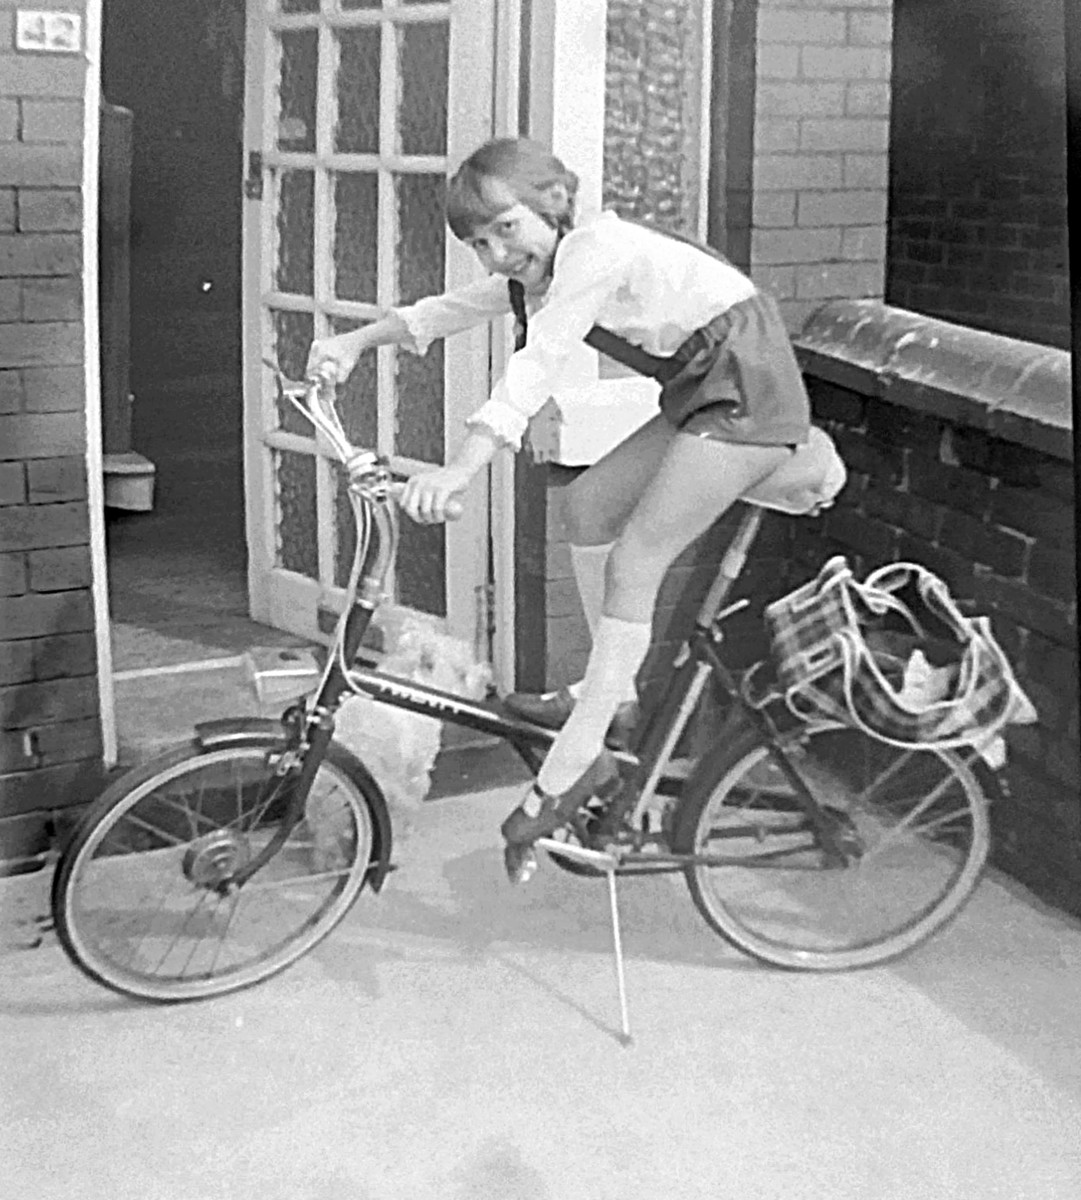 Me in the '70s trying to reach the pedals on mum's bike